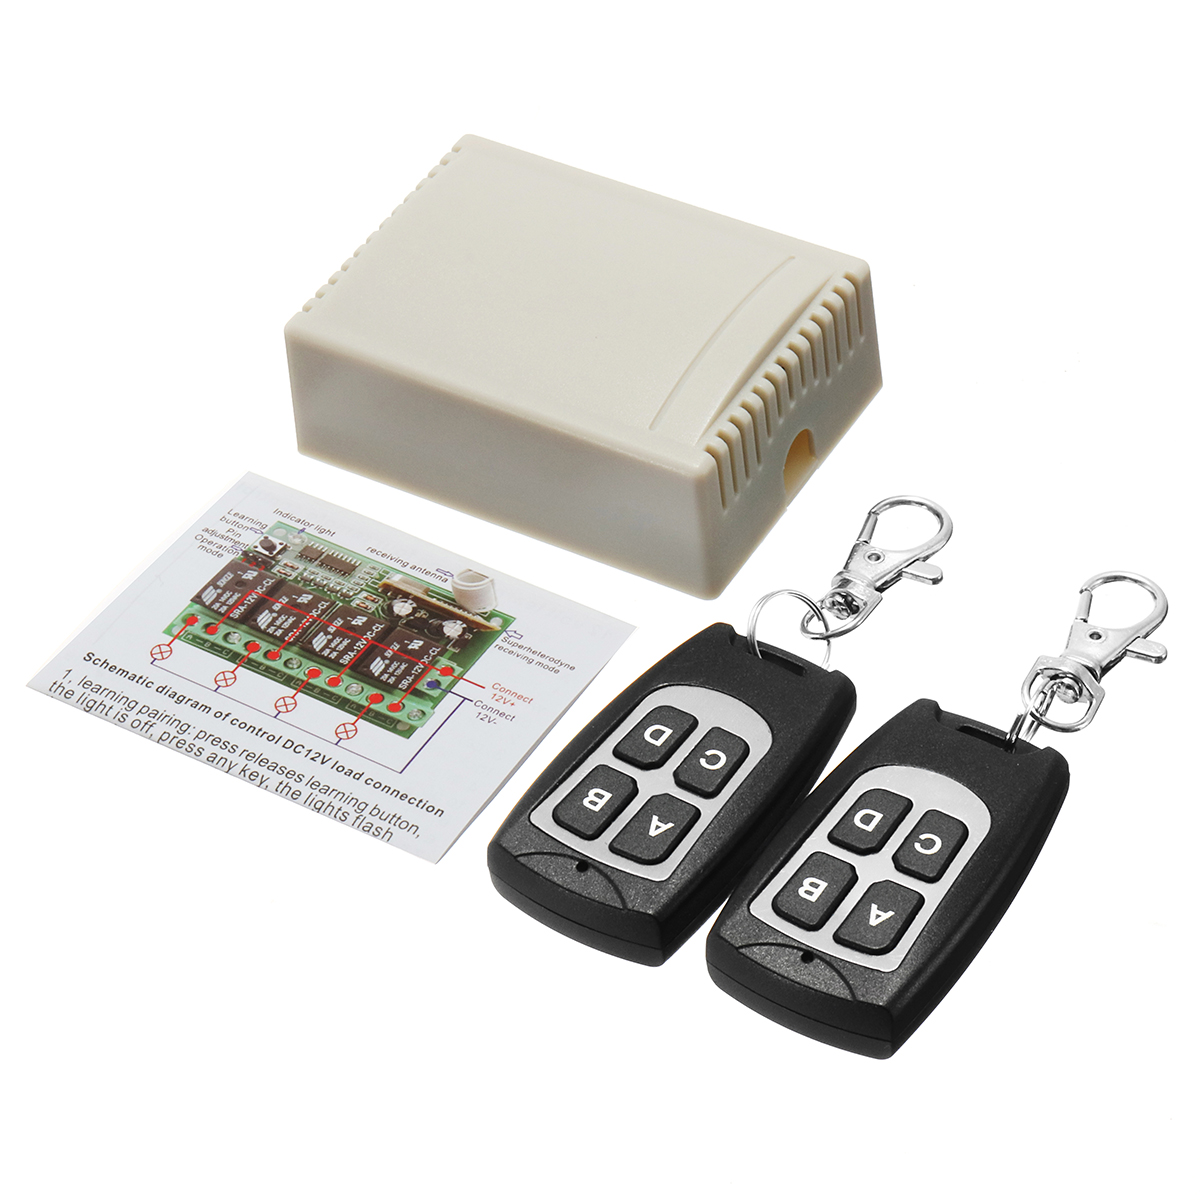 200m remote control system